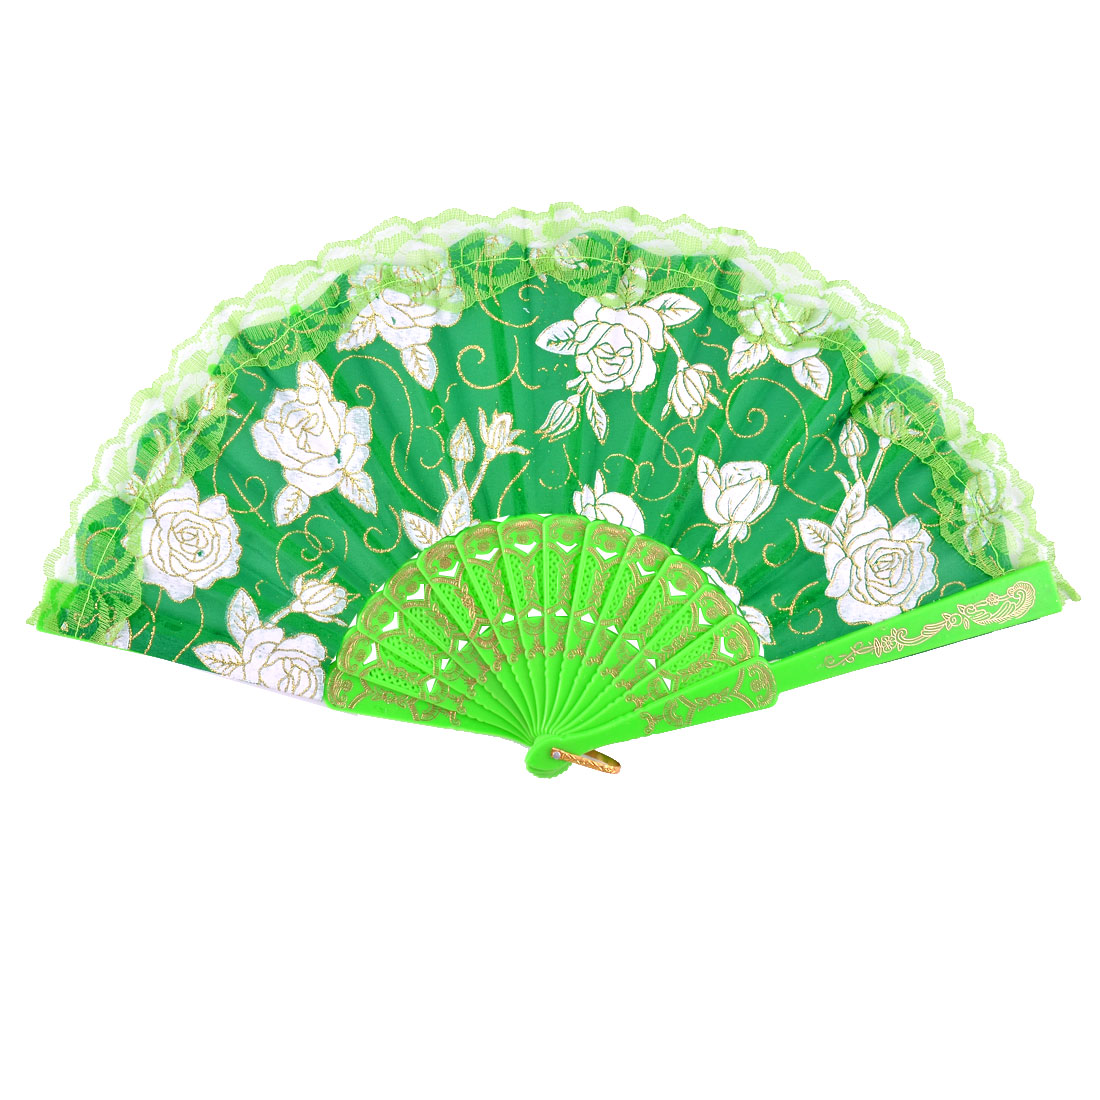 Plastic Rib Embroidered Flower Pattern Folding Handheld Hand-crafted Fan